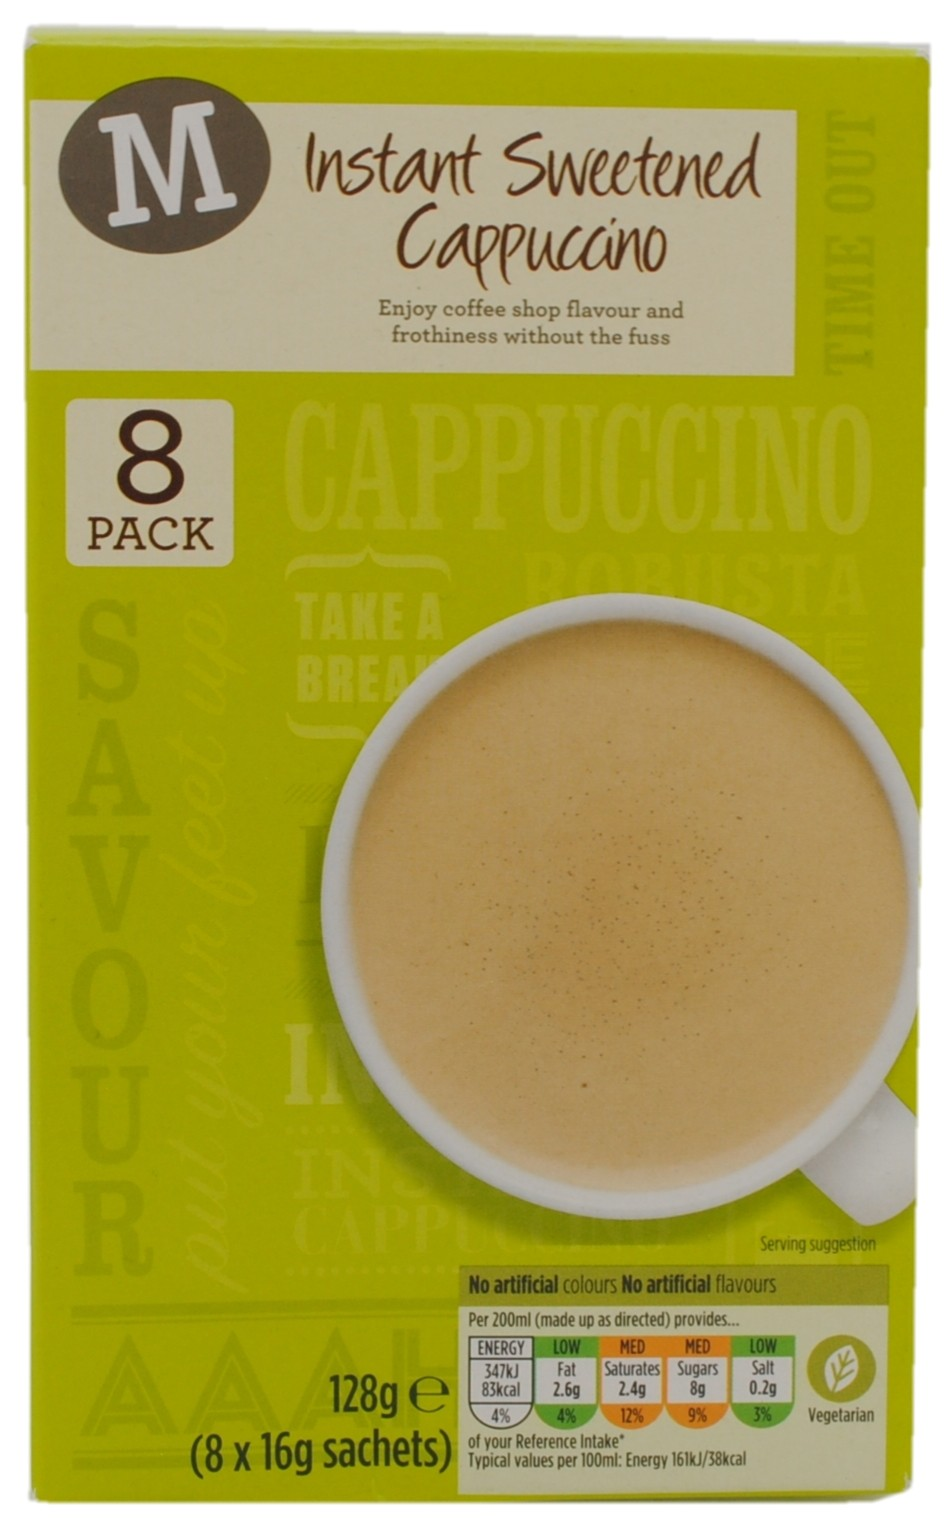 Instant Sweetened Cappuccino